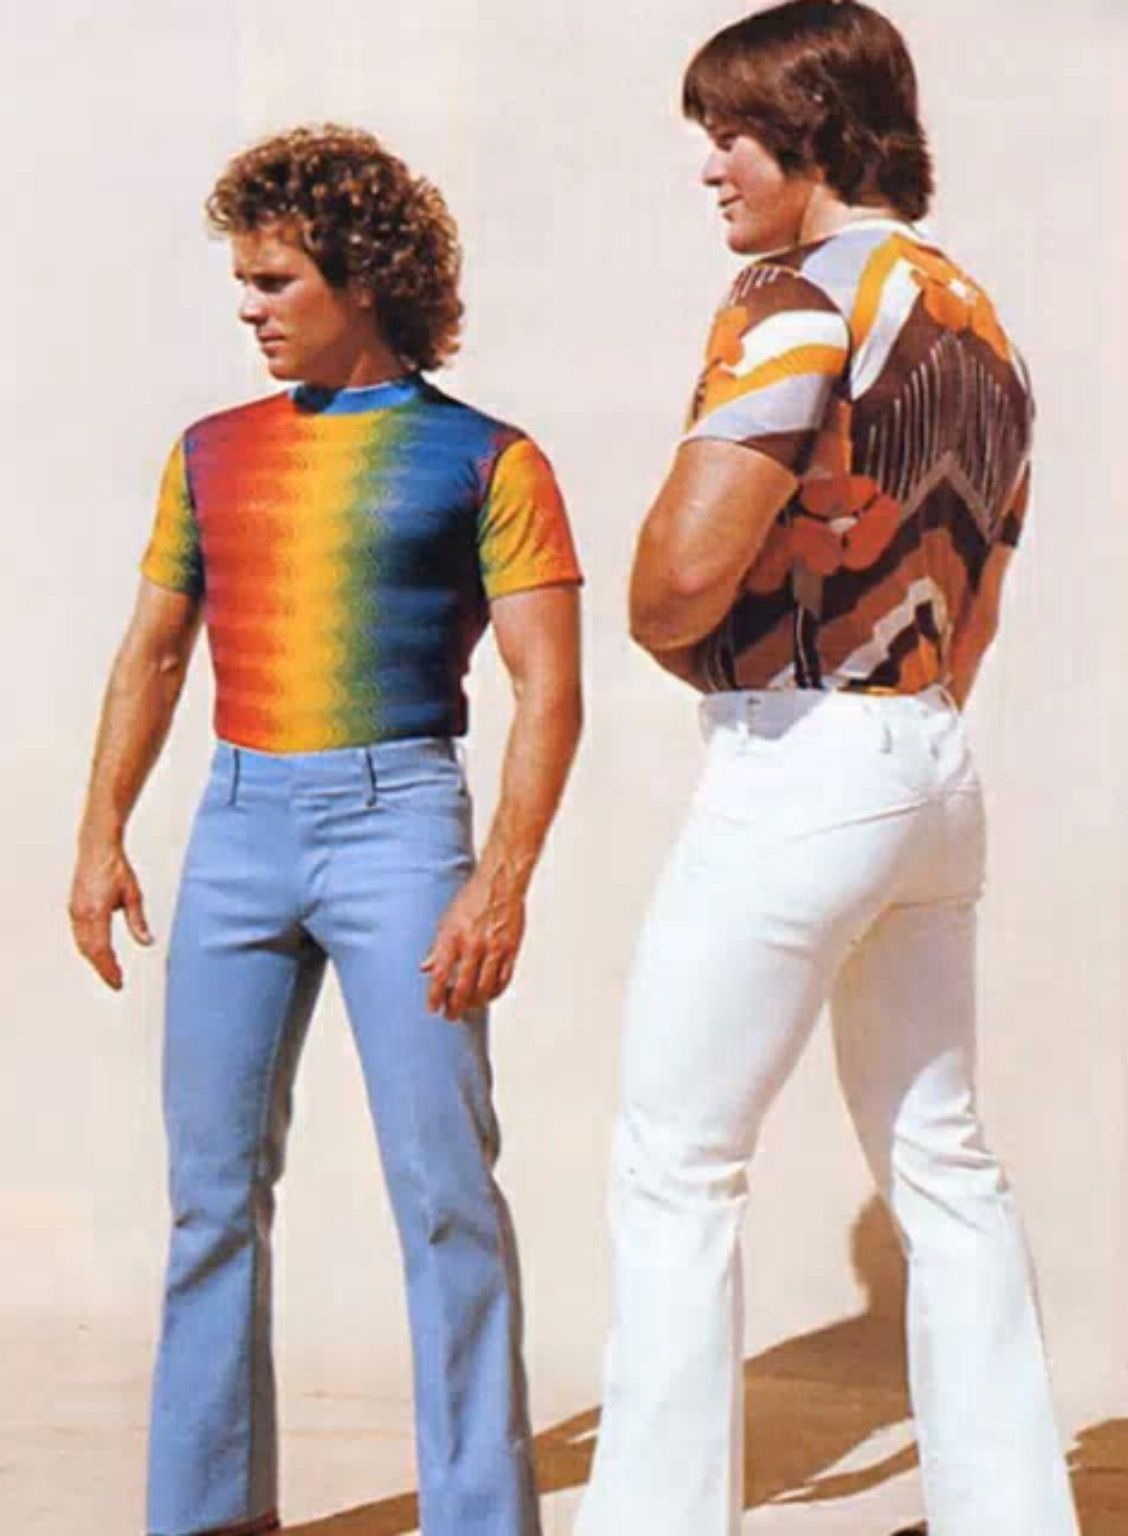 Style Année 70 70 39s Fashion Orange And Yellow Fashion 70s Fashion Men